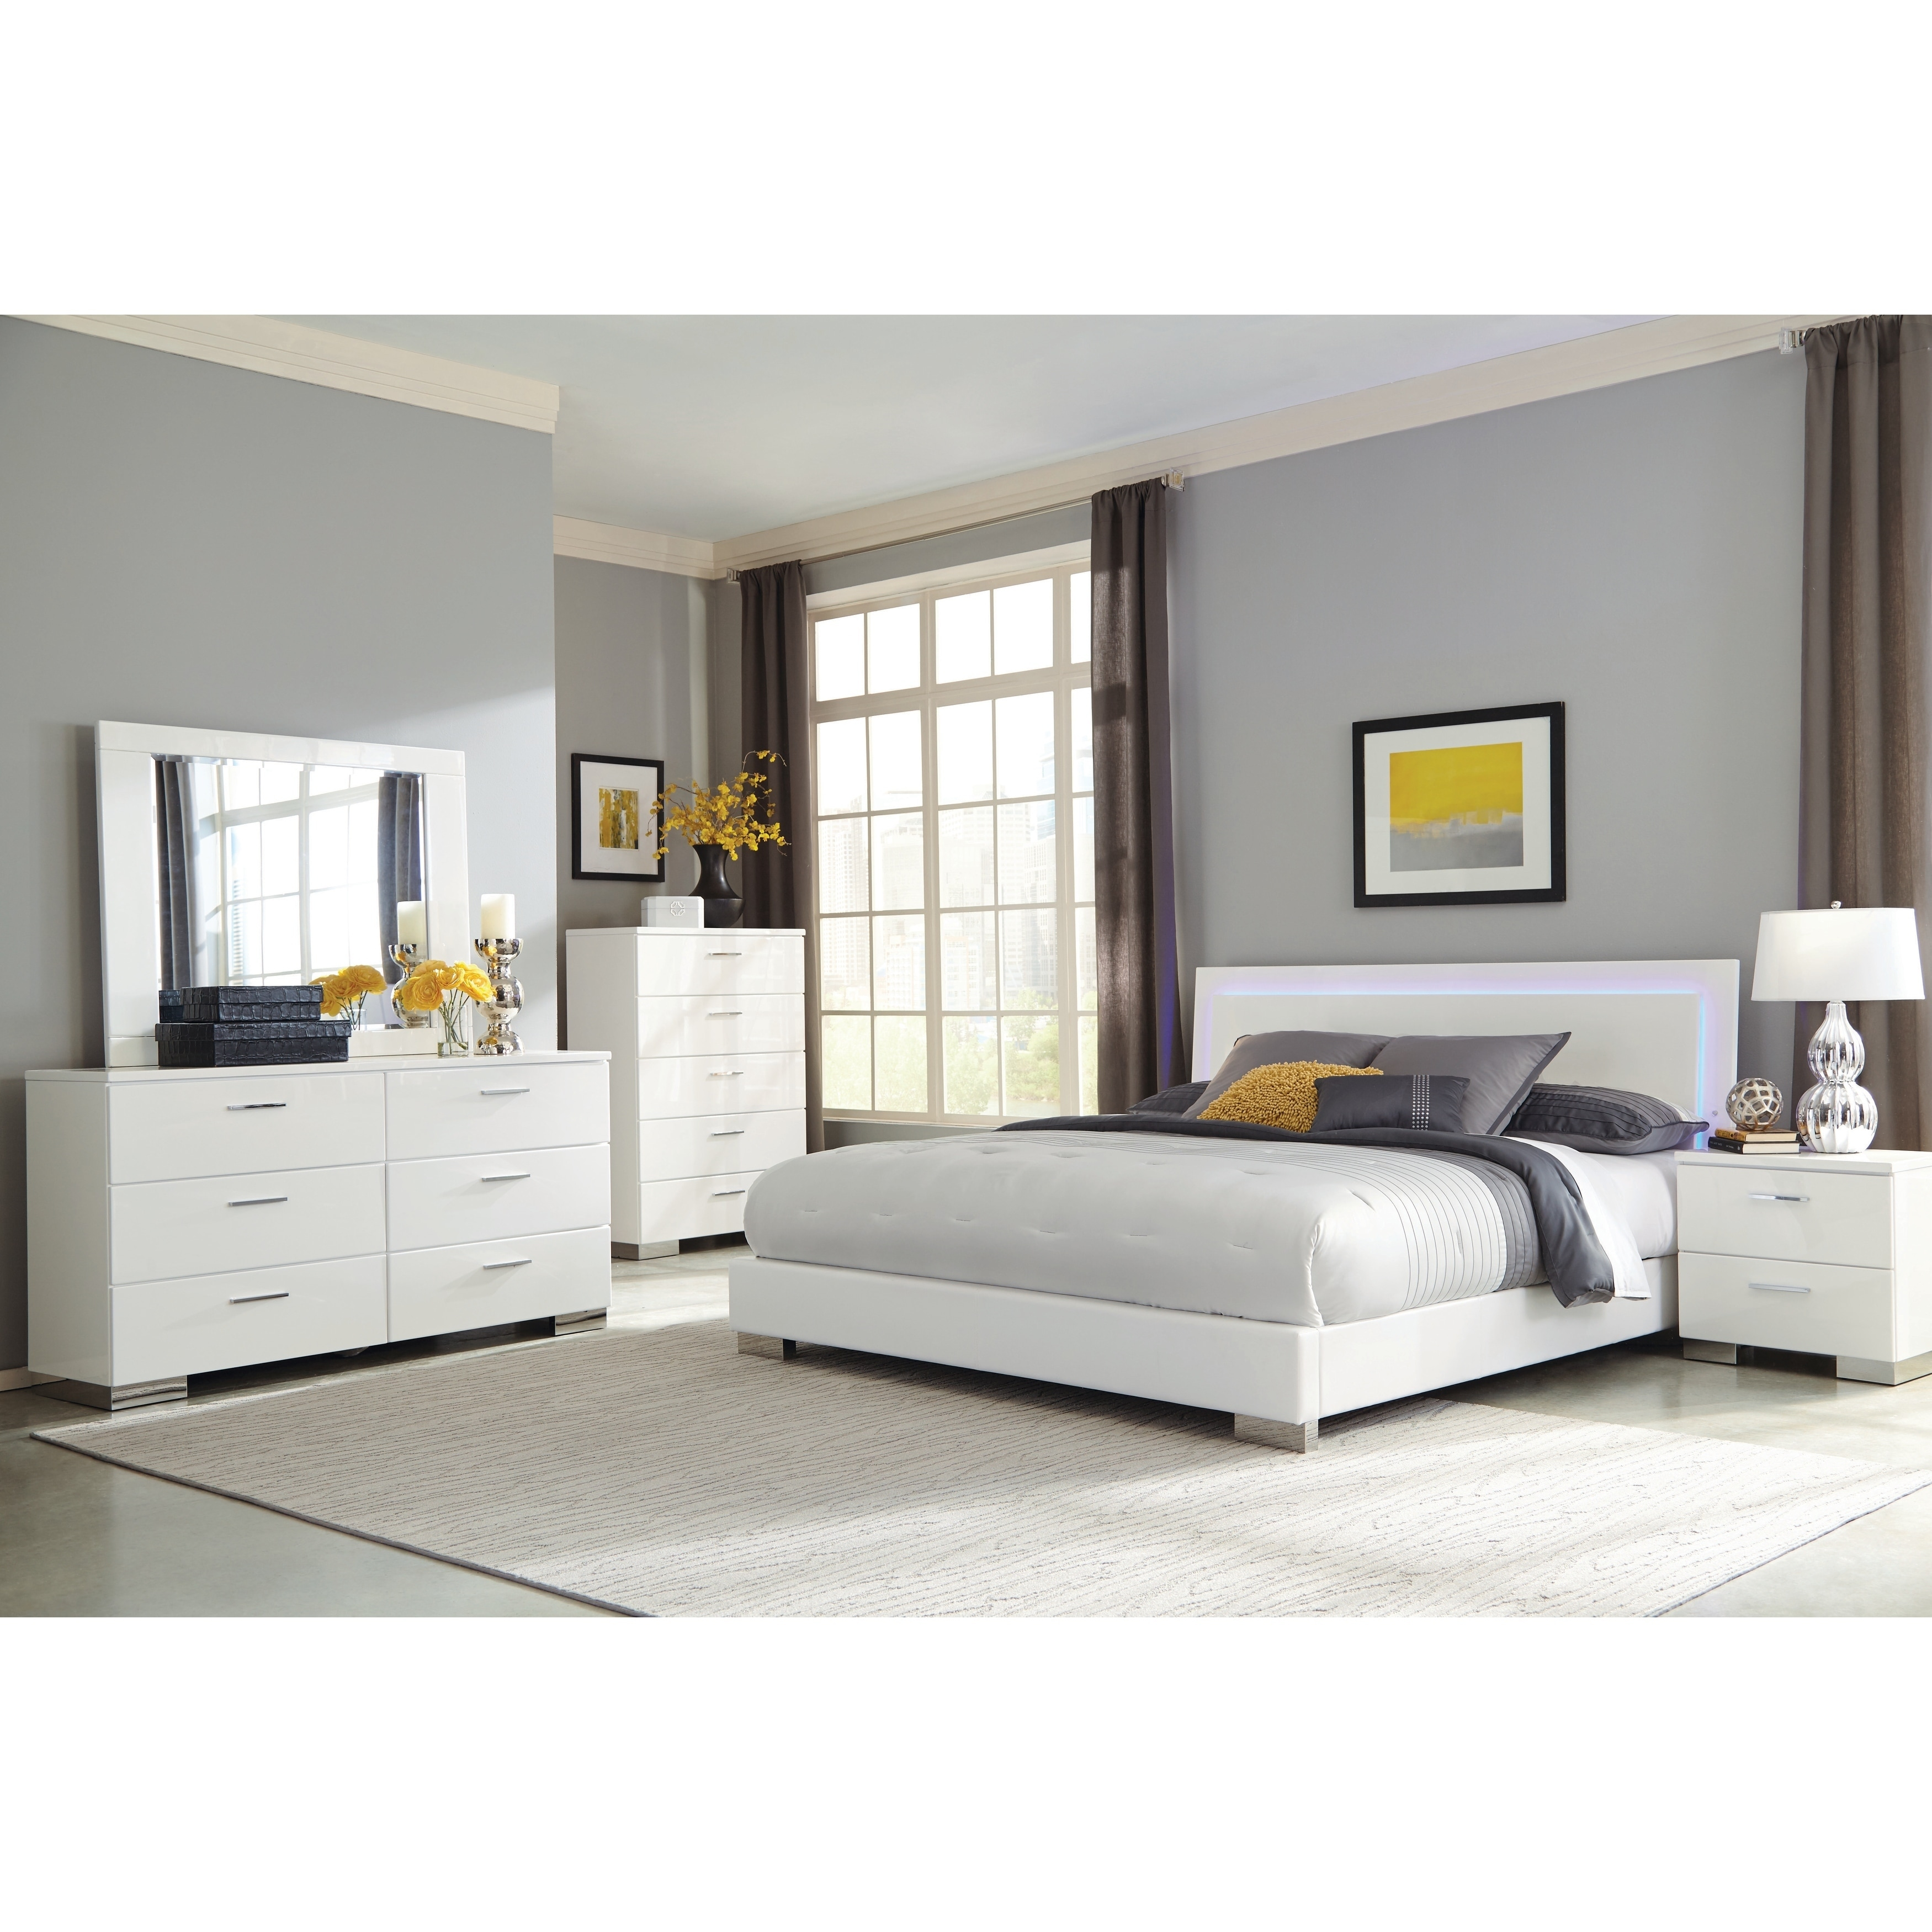 Shop Strick & Bolton Alice White King Bed - On Sale - Free Shipping ...